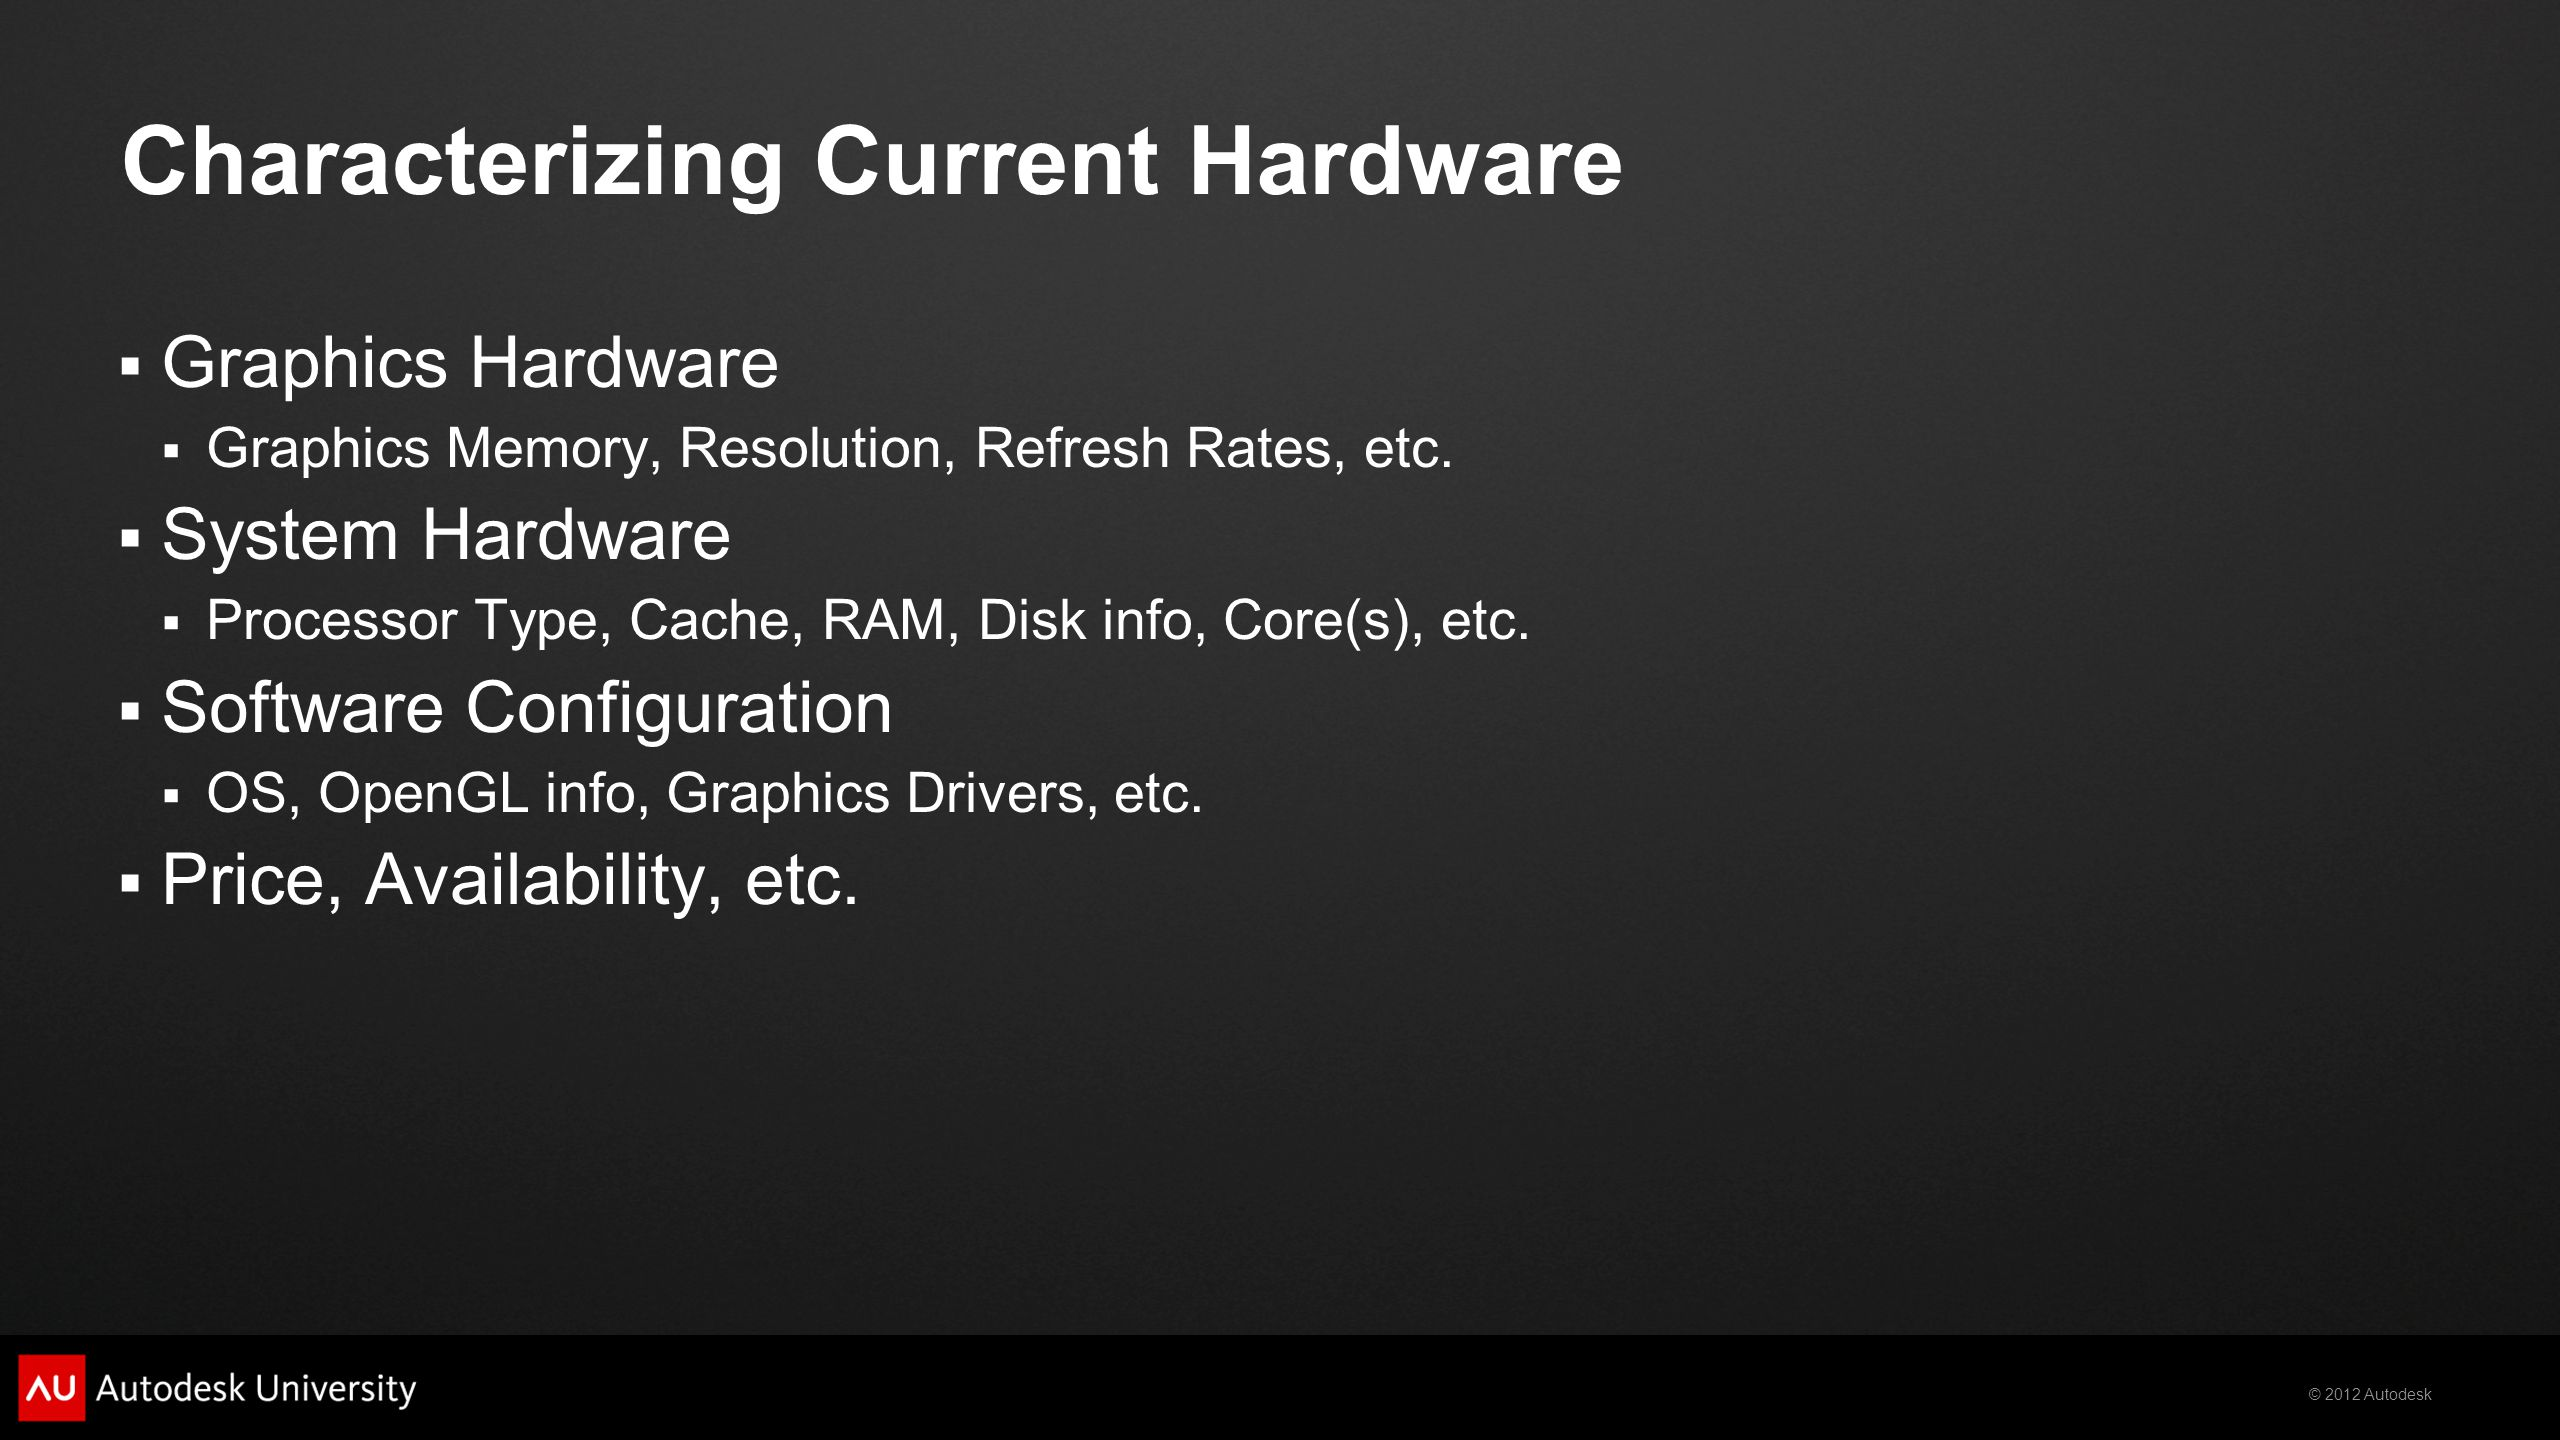 Characterizing Current Hardware